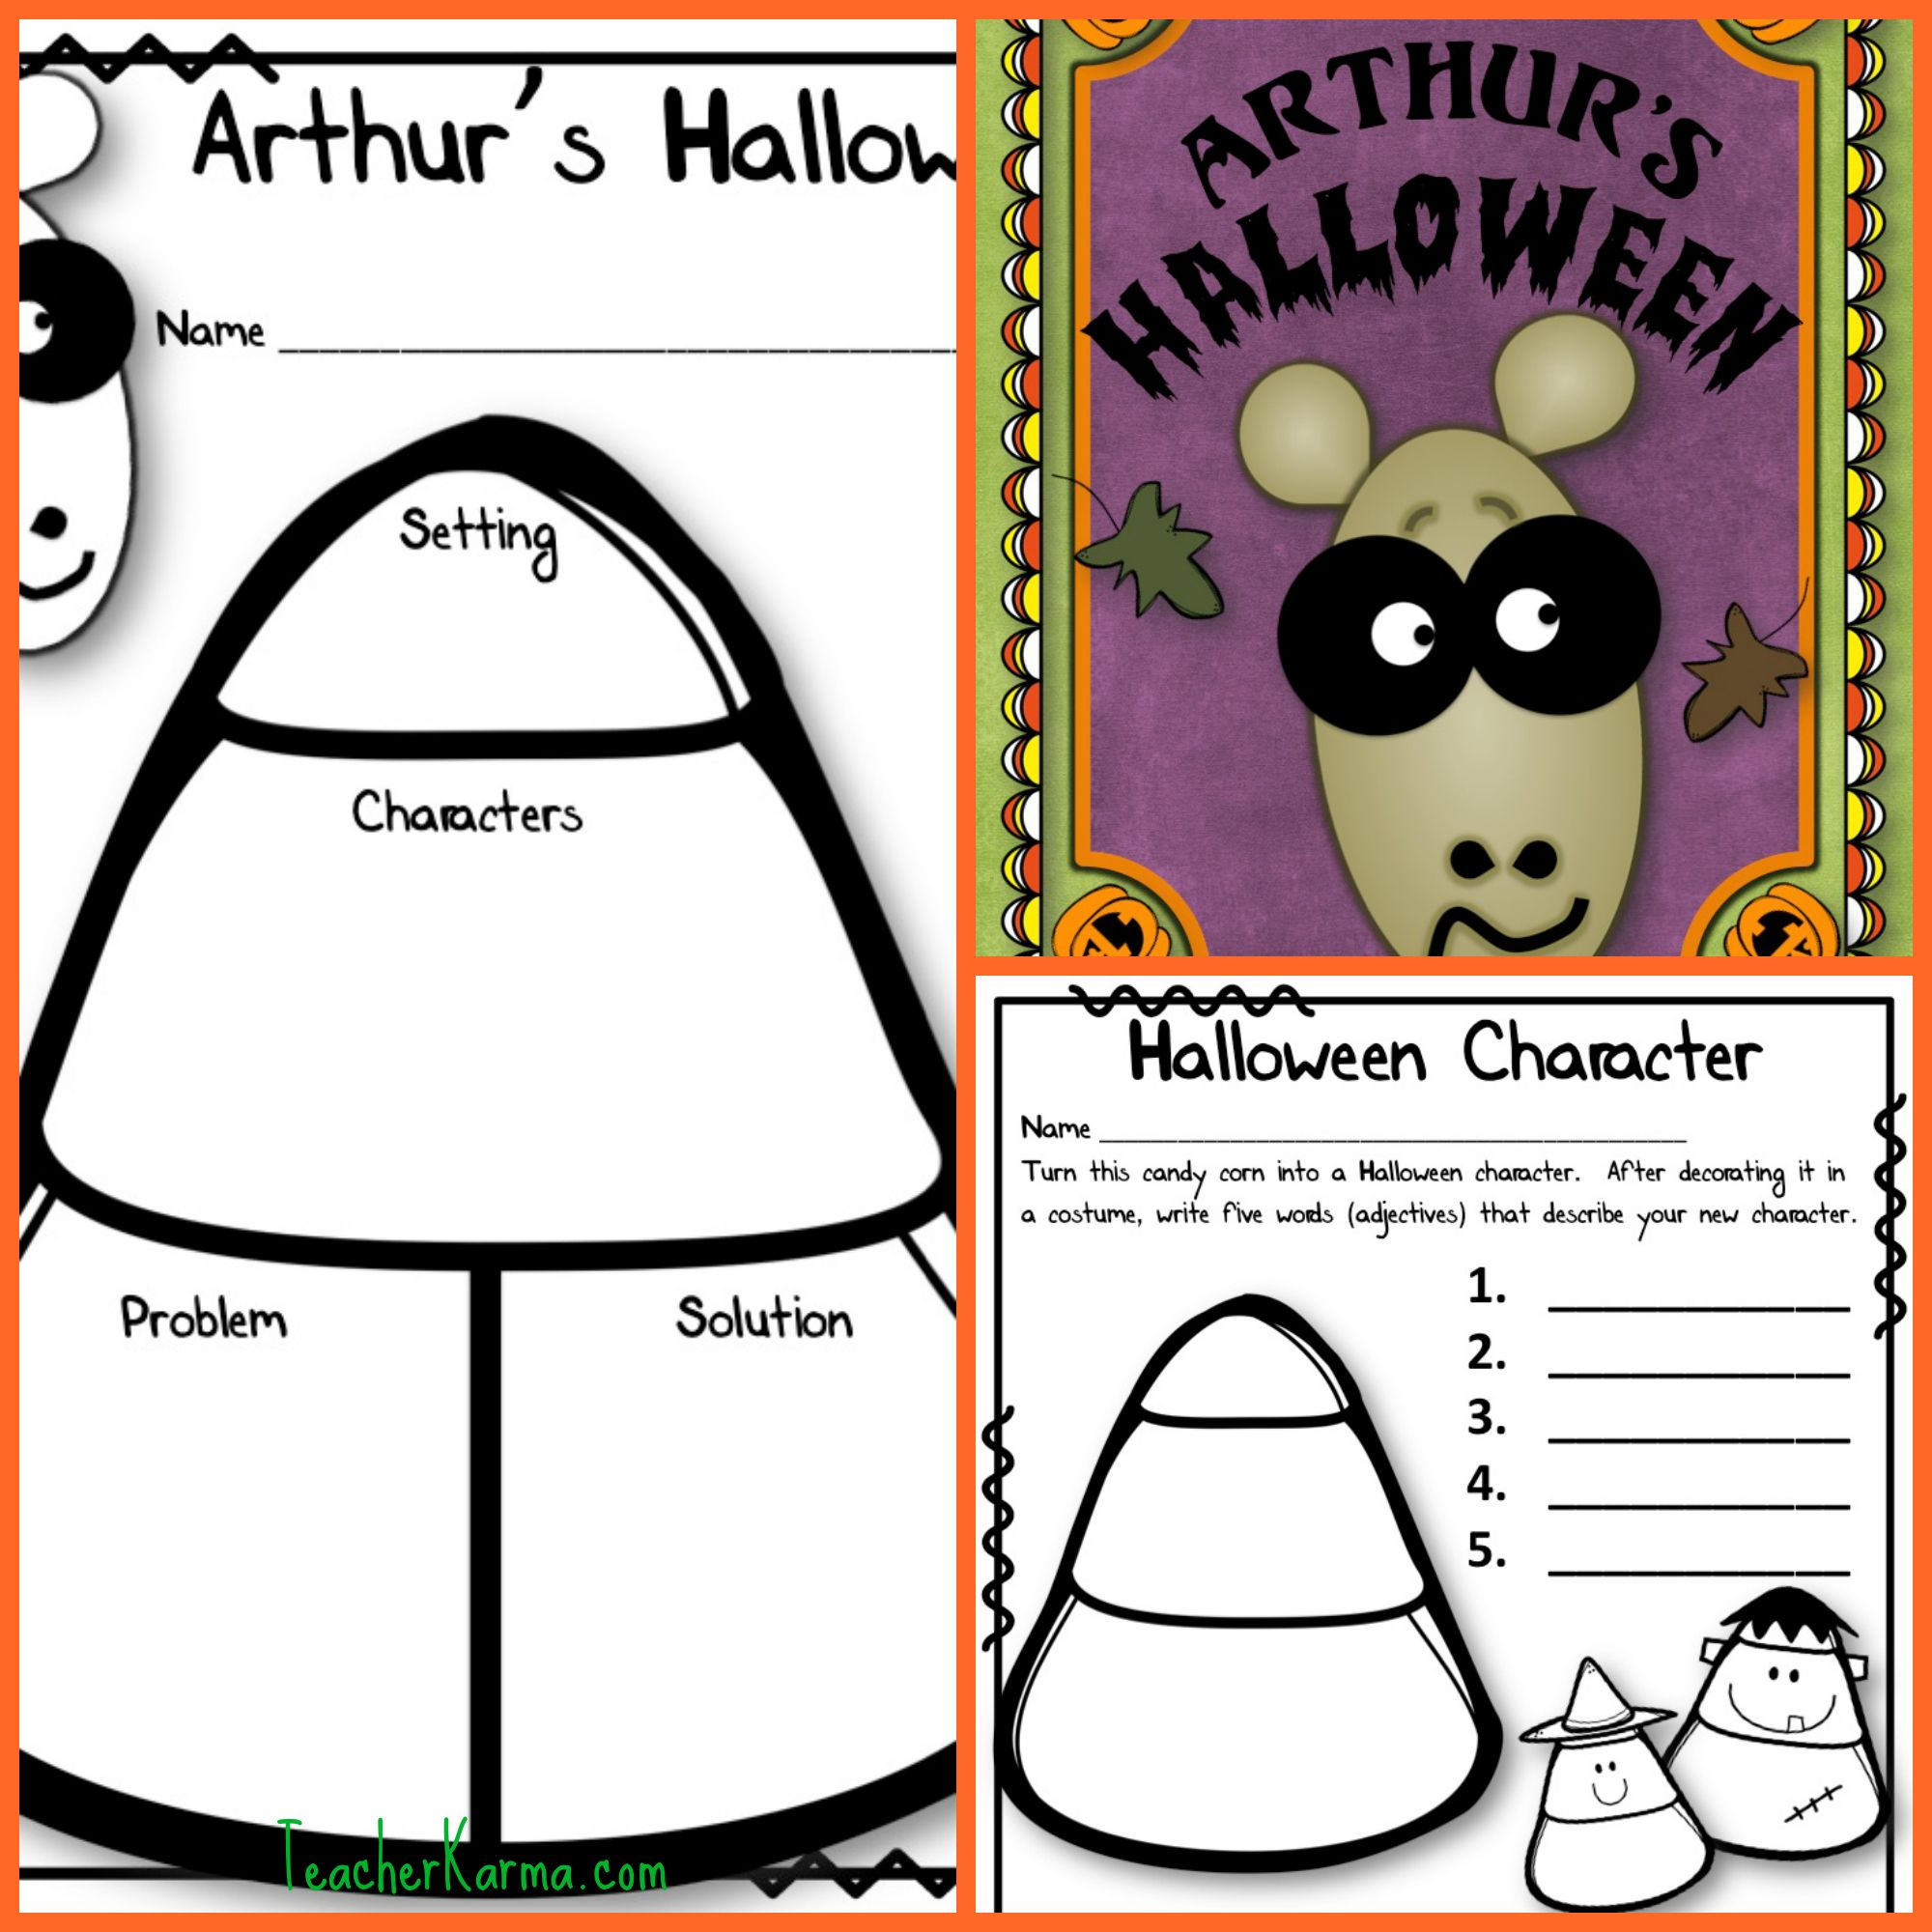 Arthur's Halloween FUN Literacy Kit!  Printables, games, reading activities, comprehension and vocabulary quizzes, YOU WILL LOVE IT!   TeacherKarma.com #arthurs #halloween